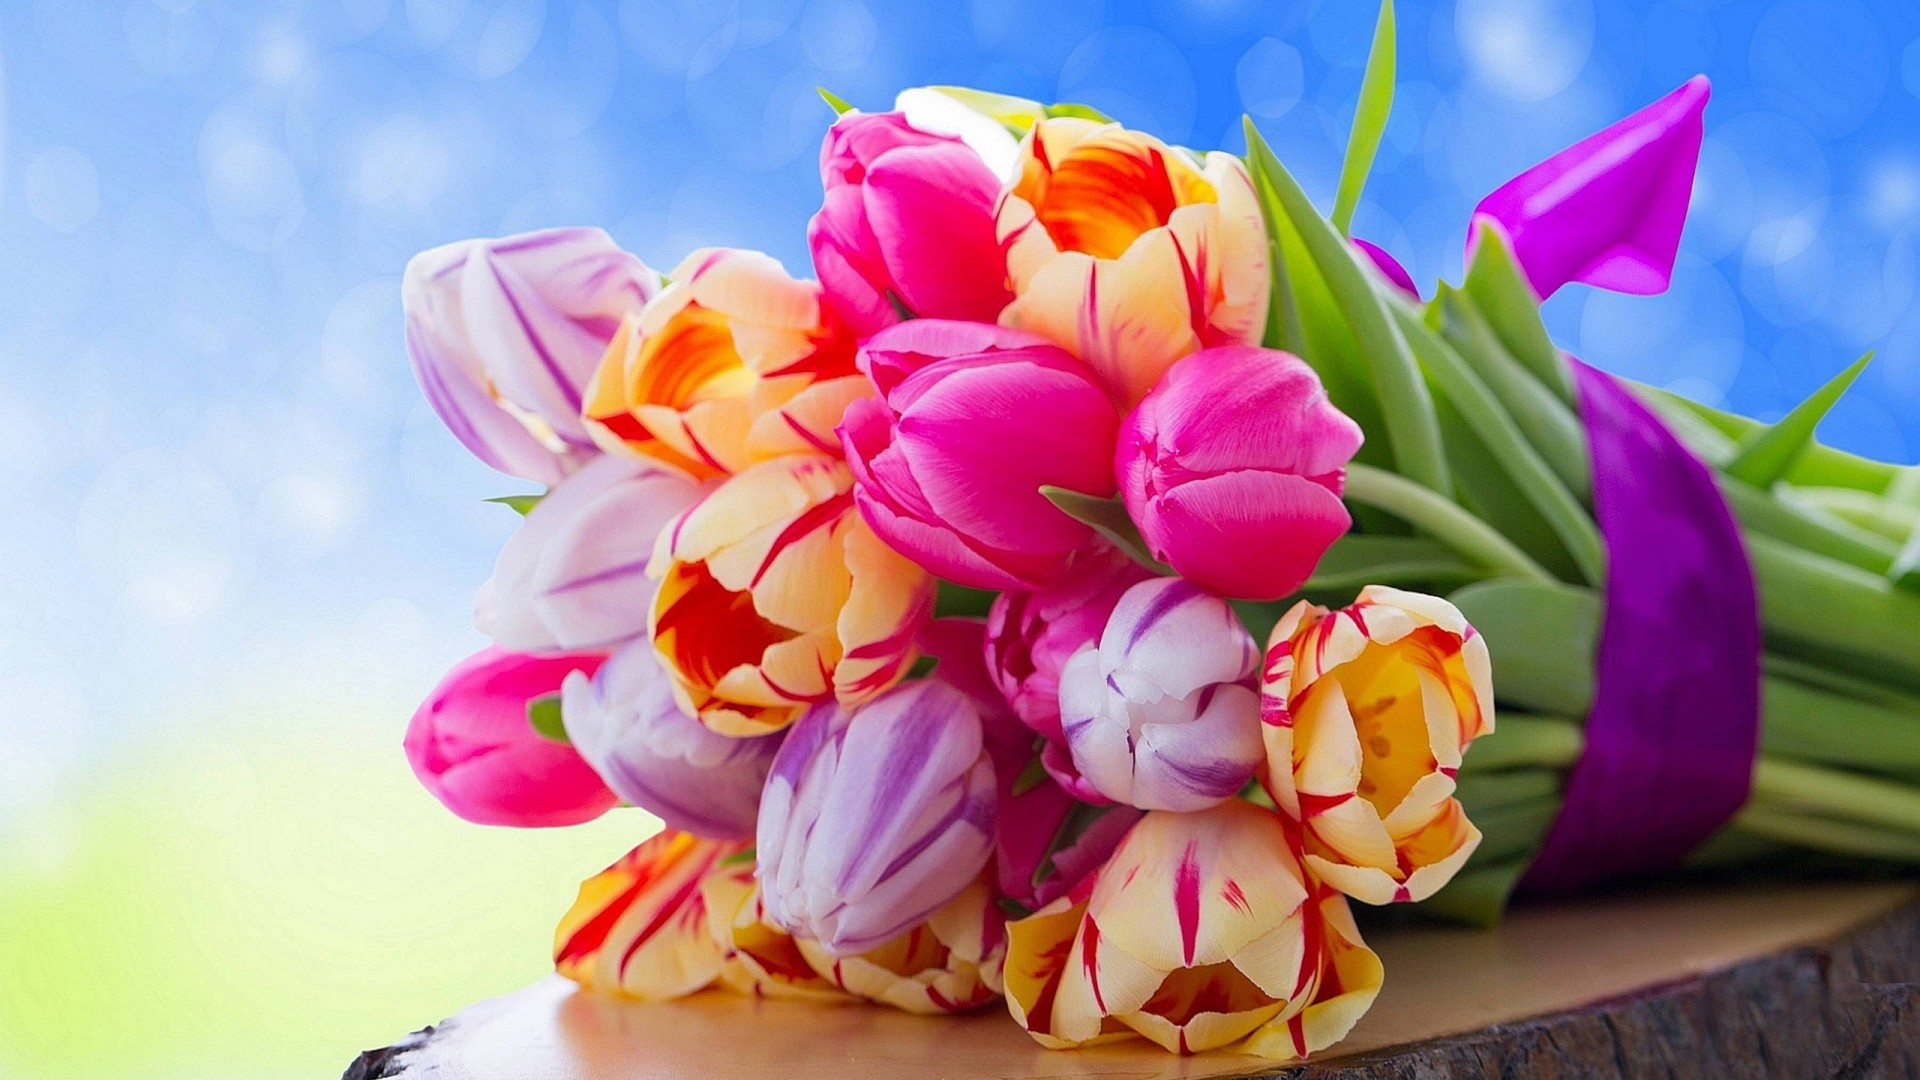 ** Florist by Waitrose & Partners Voucher Code – 10% off all flowers and plants at Florist by Waitrose & Partners